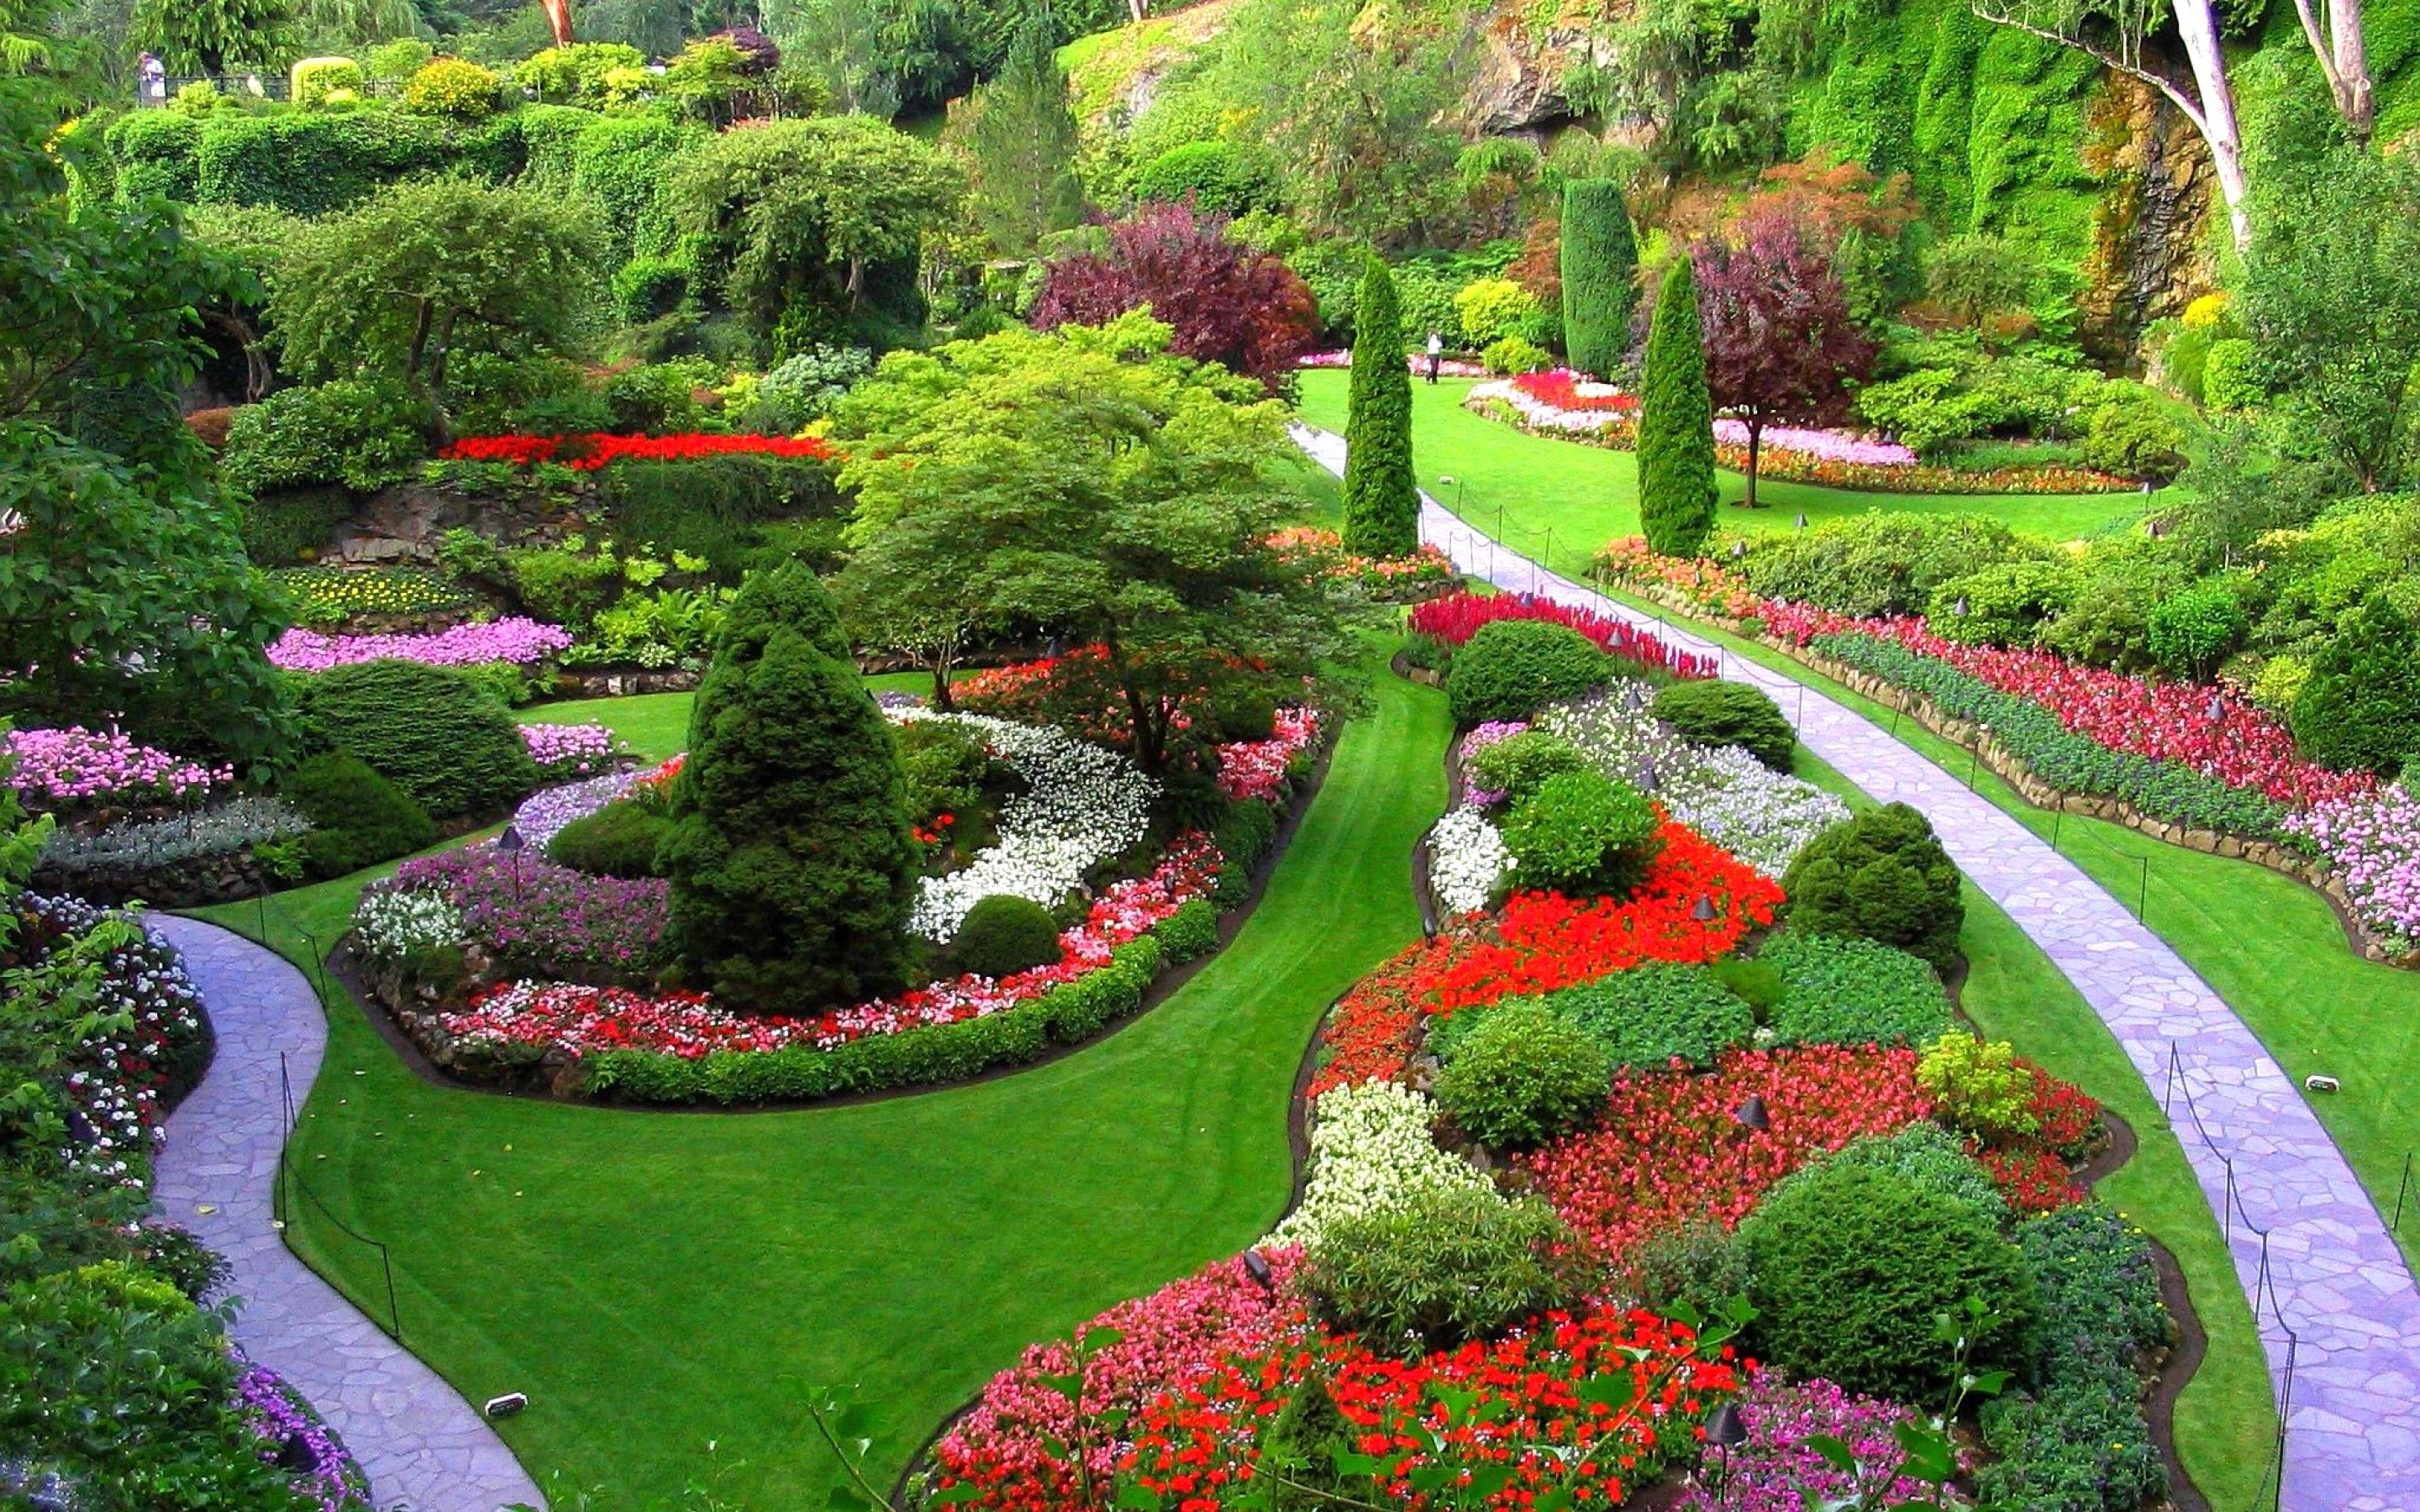 Flower Garden Images Free Download Hd Incredible Flowers In Butchart Gardens Garden Design Garden Features